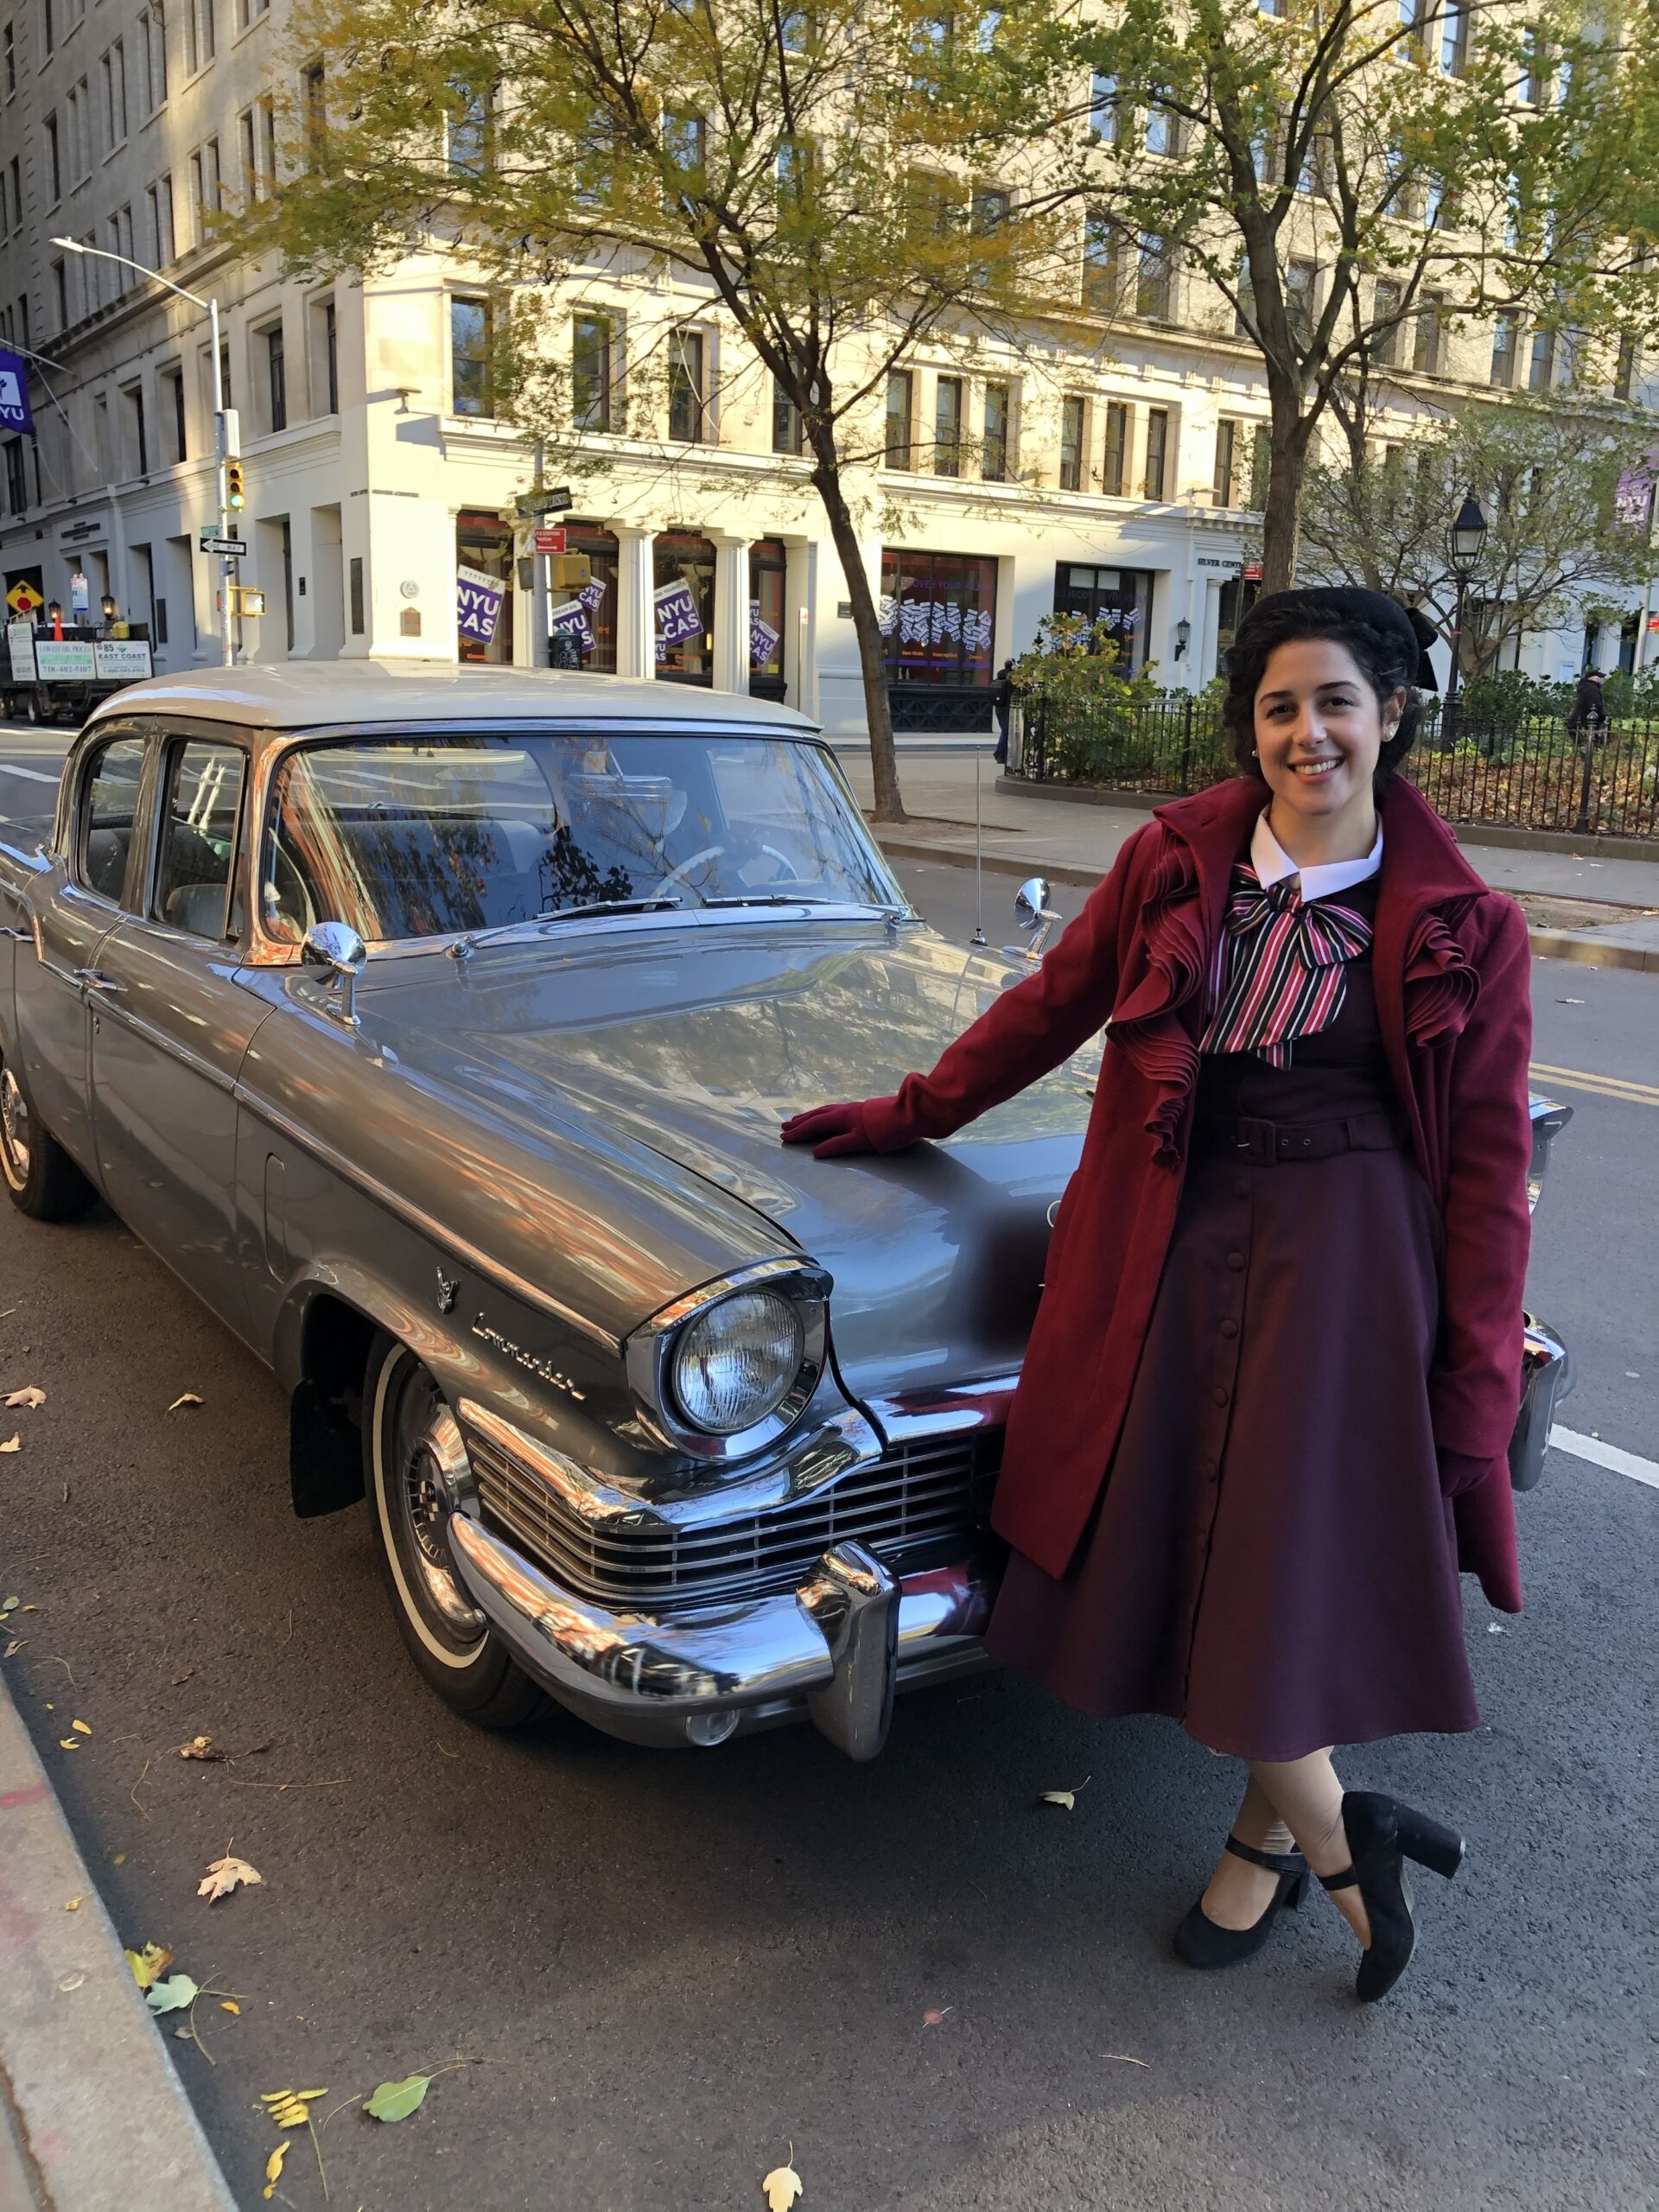 On Location Tours: Mrs. Maisel's Marvelous Tour of New York